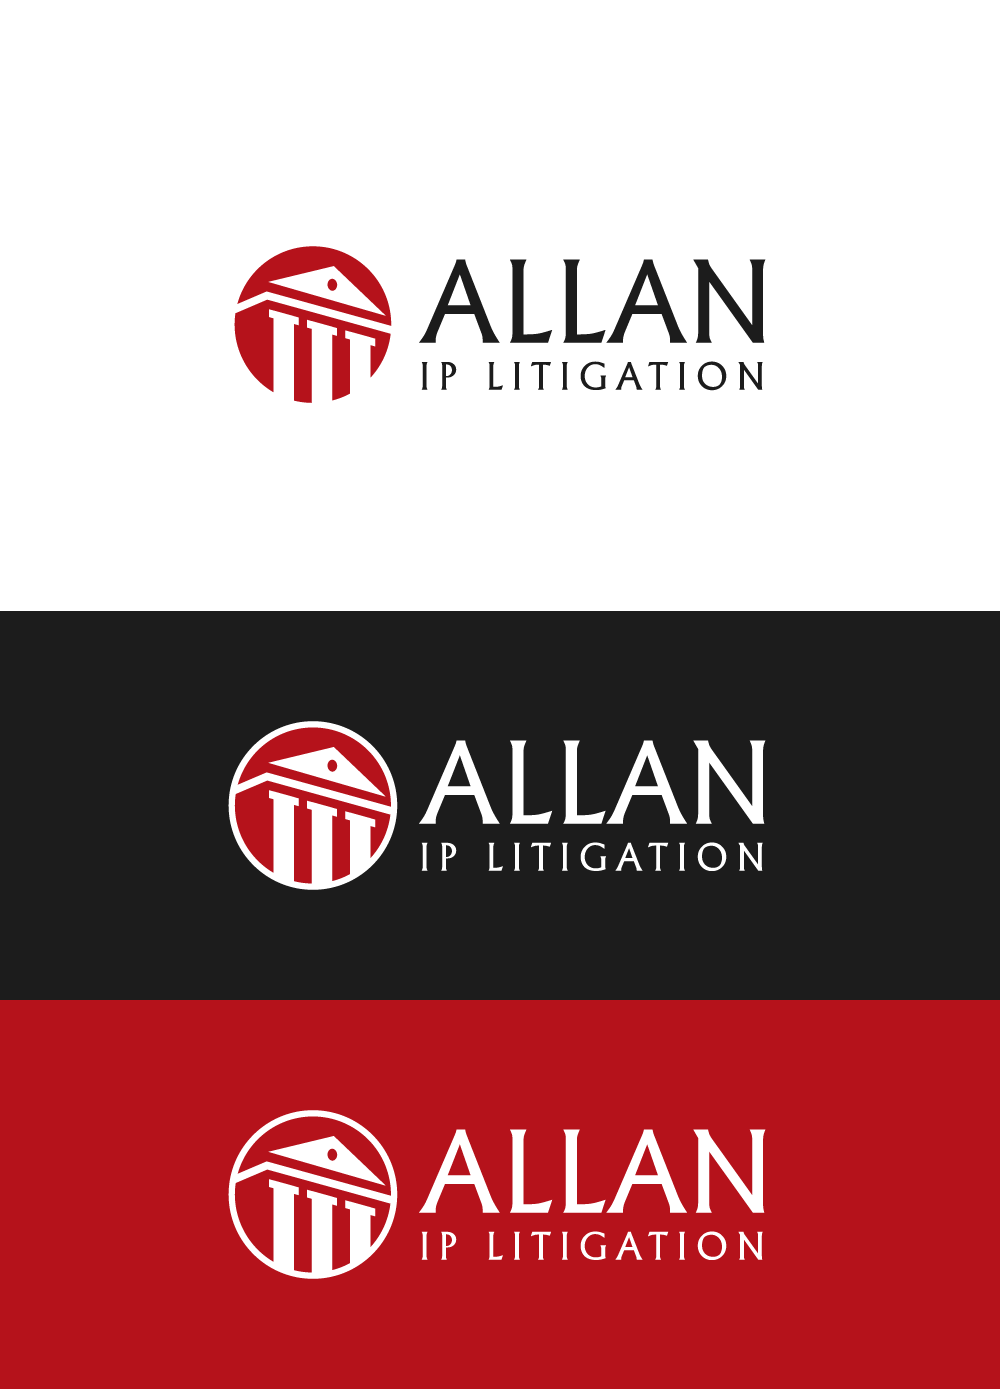 New logo for lawyer